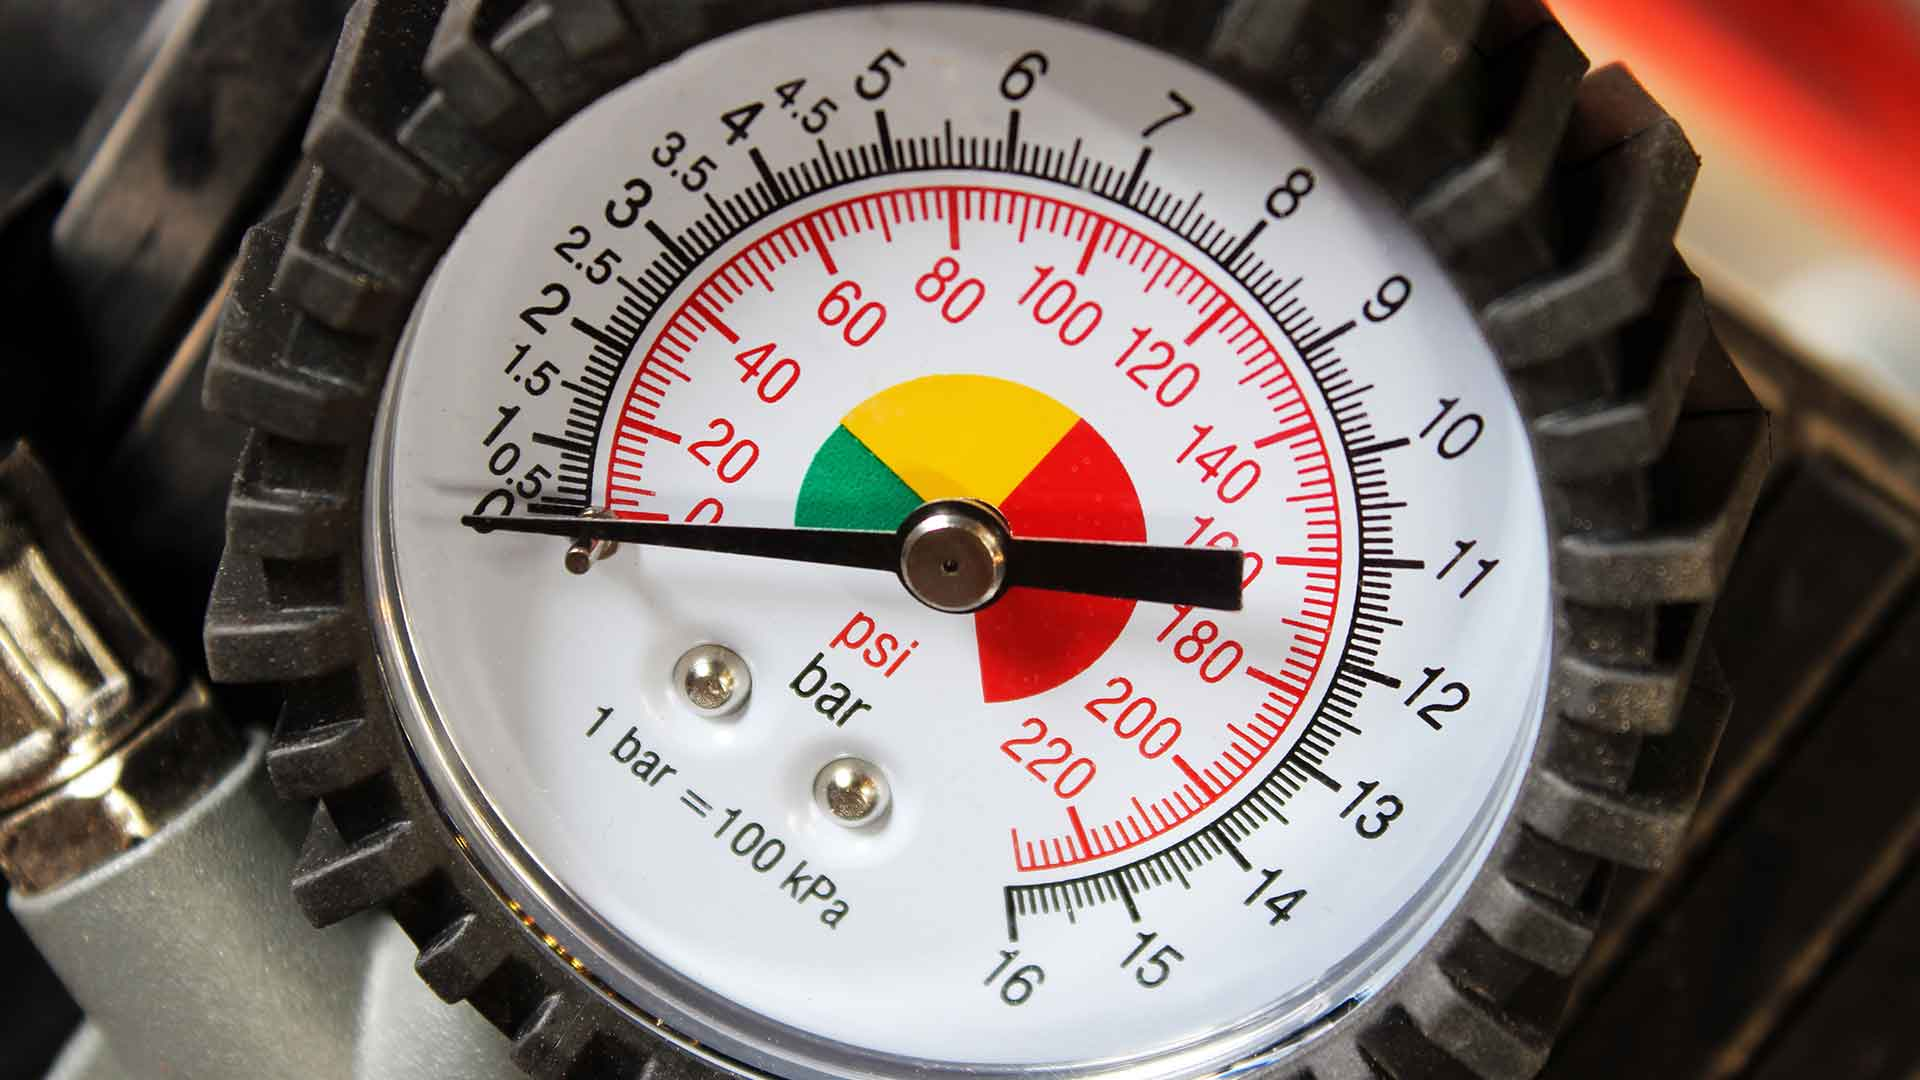 photo of the gauge of a compressed air measurement tool